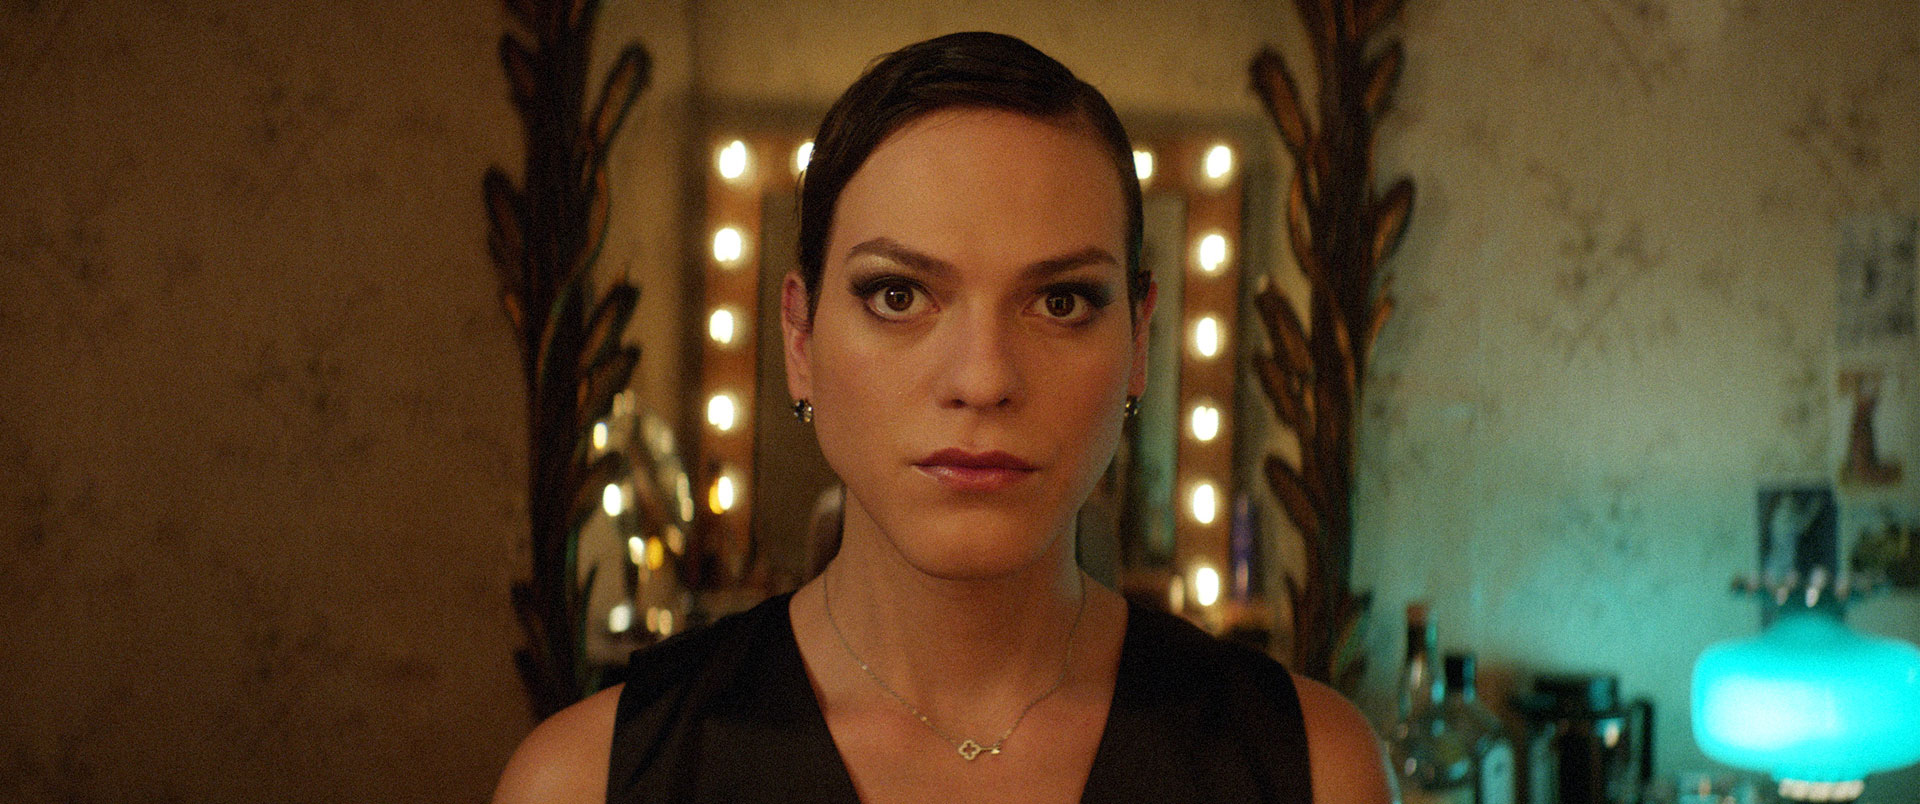 Movies to watch during Pride: A Fantastic Woman